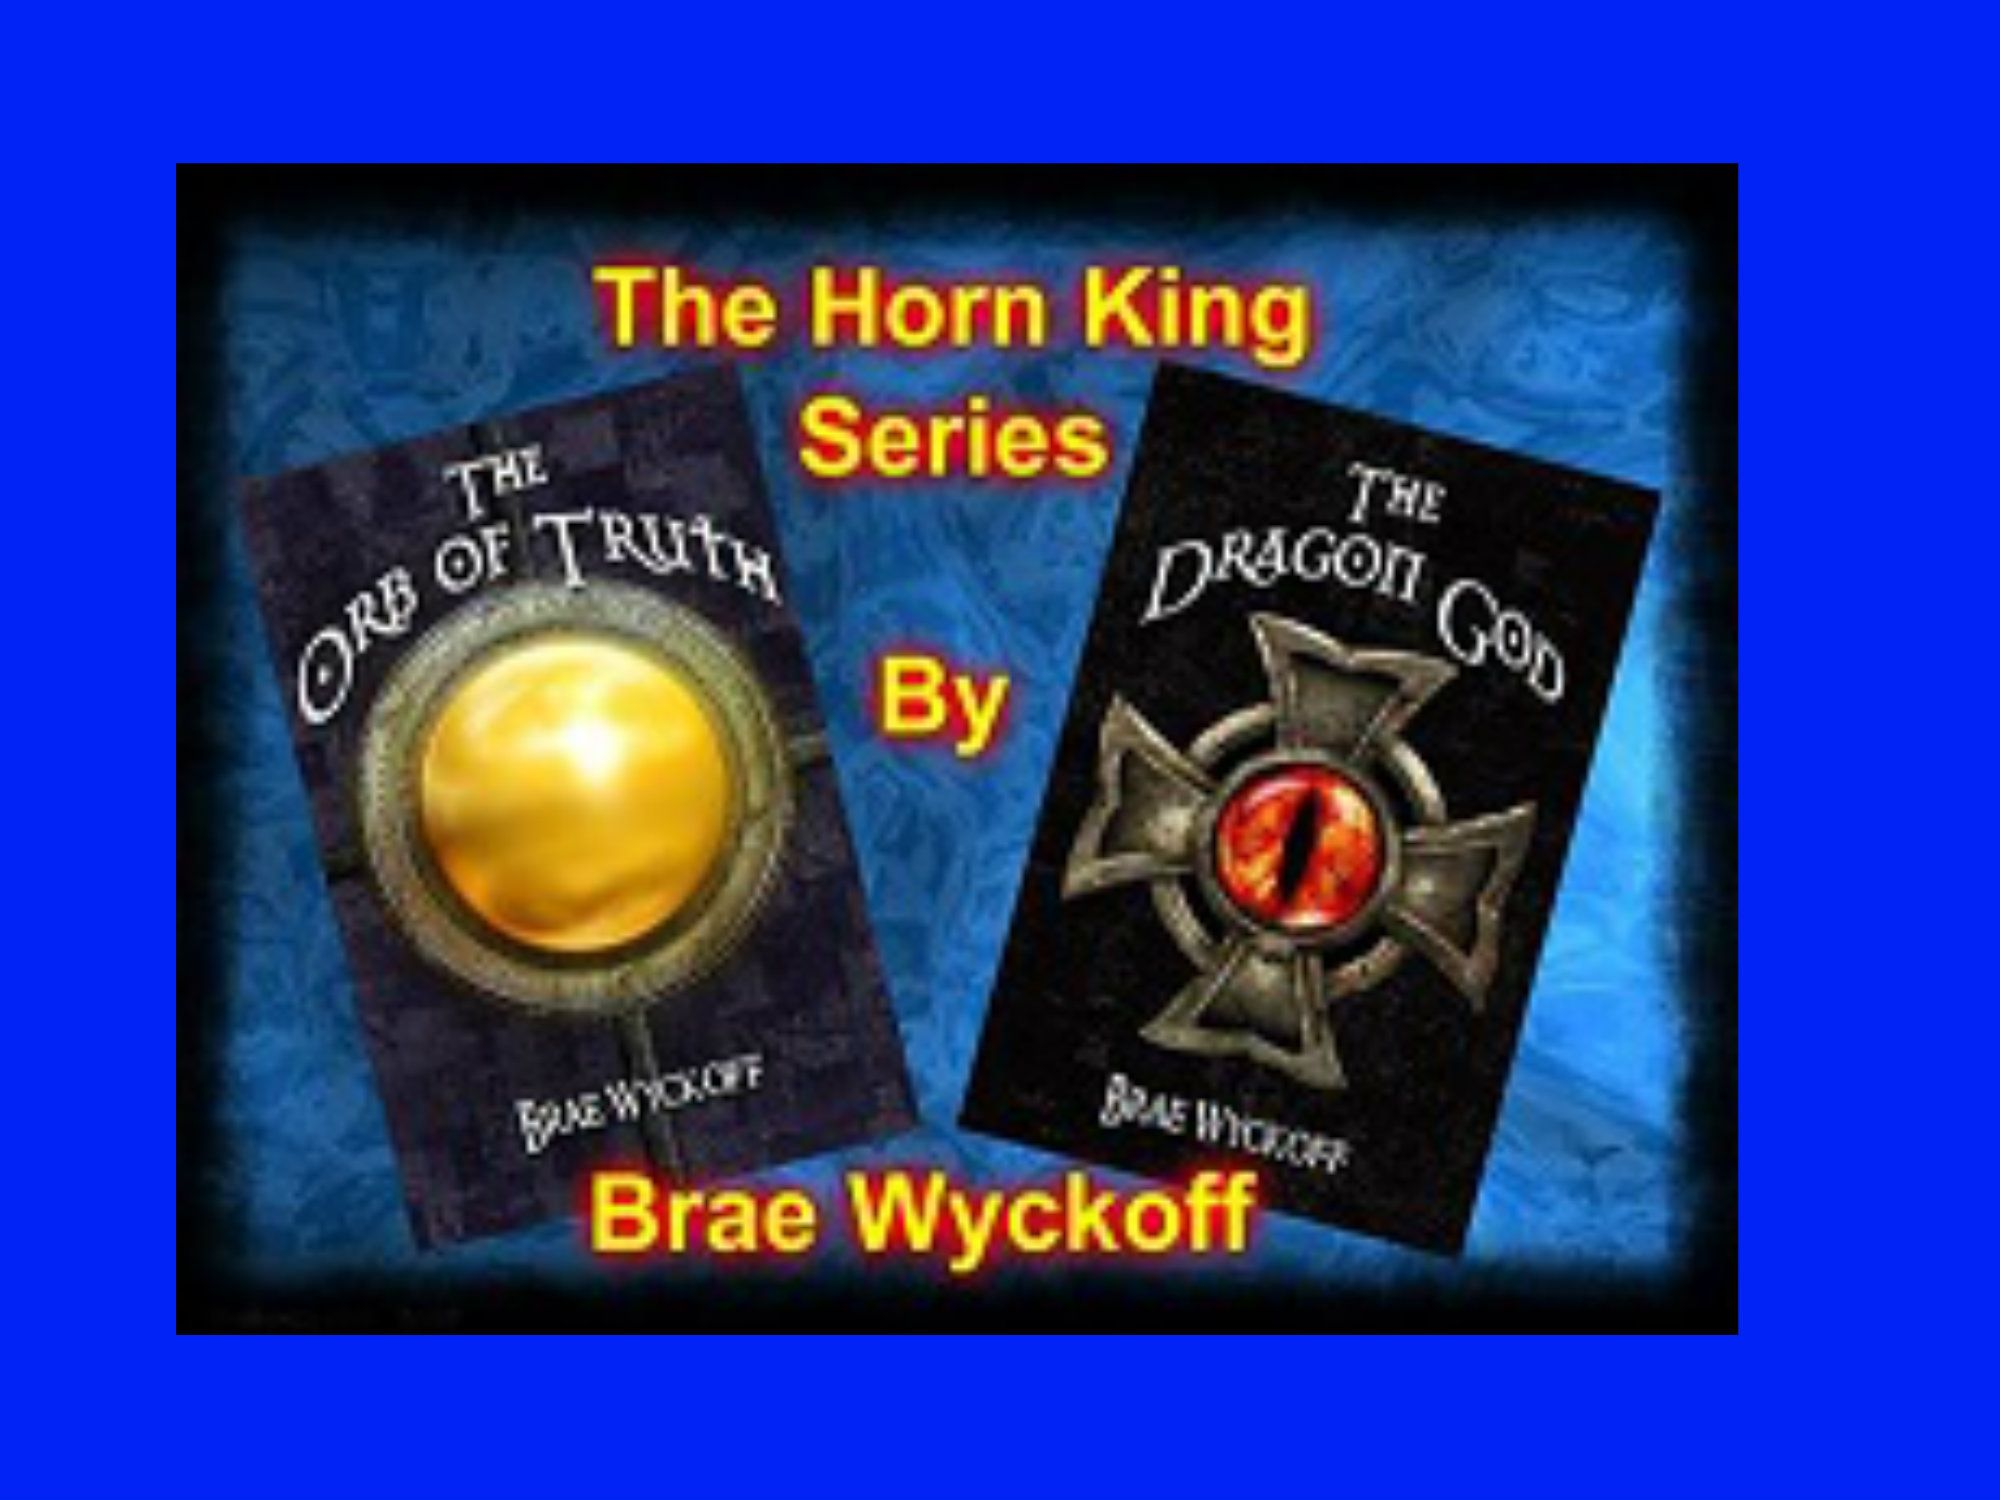 """# aromasauthors # braewyckoff """"The Orb of Truth"""" Book 1 Voted #1 Best  Fantasy Book Under the Radar! Voted #1 Best Christian Sci-Fi/Fantasy Book!"""